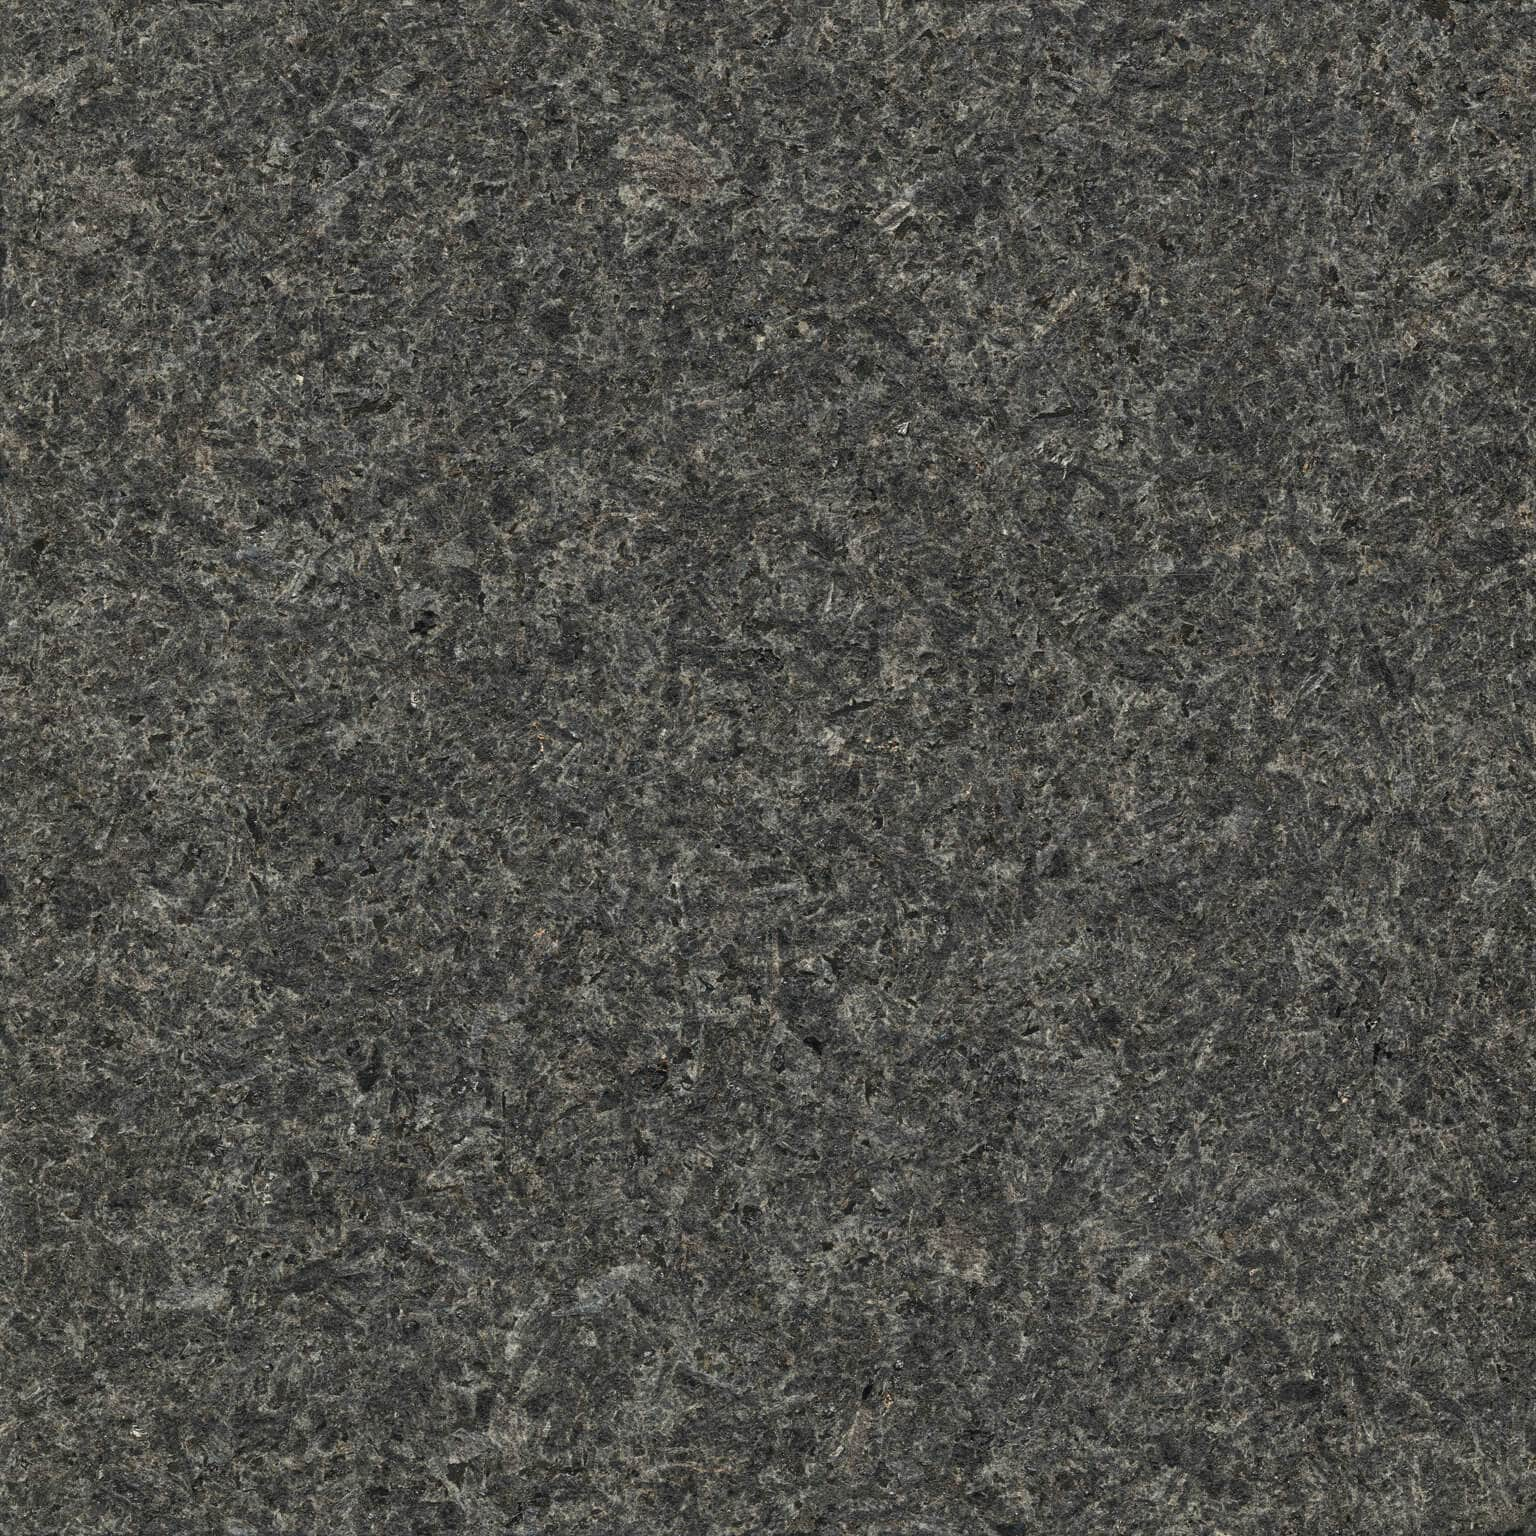 Cambrian Black Granite : Cambrian black granite natural stones polycor